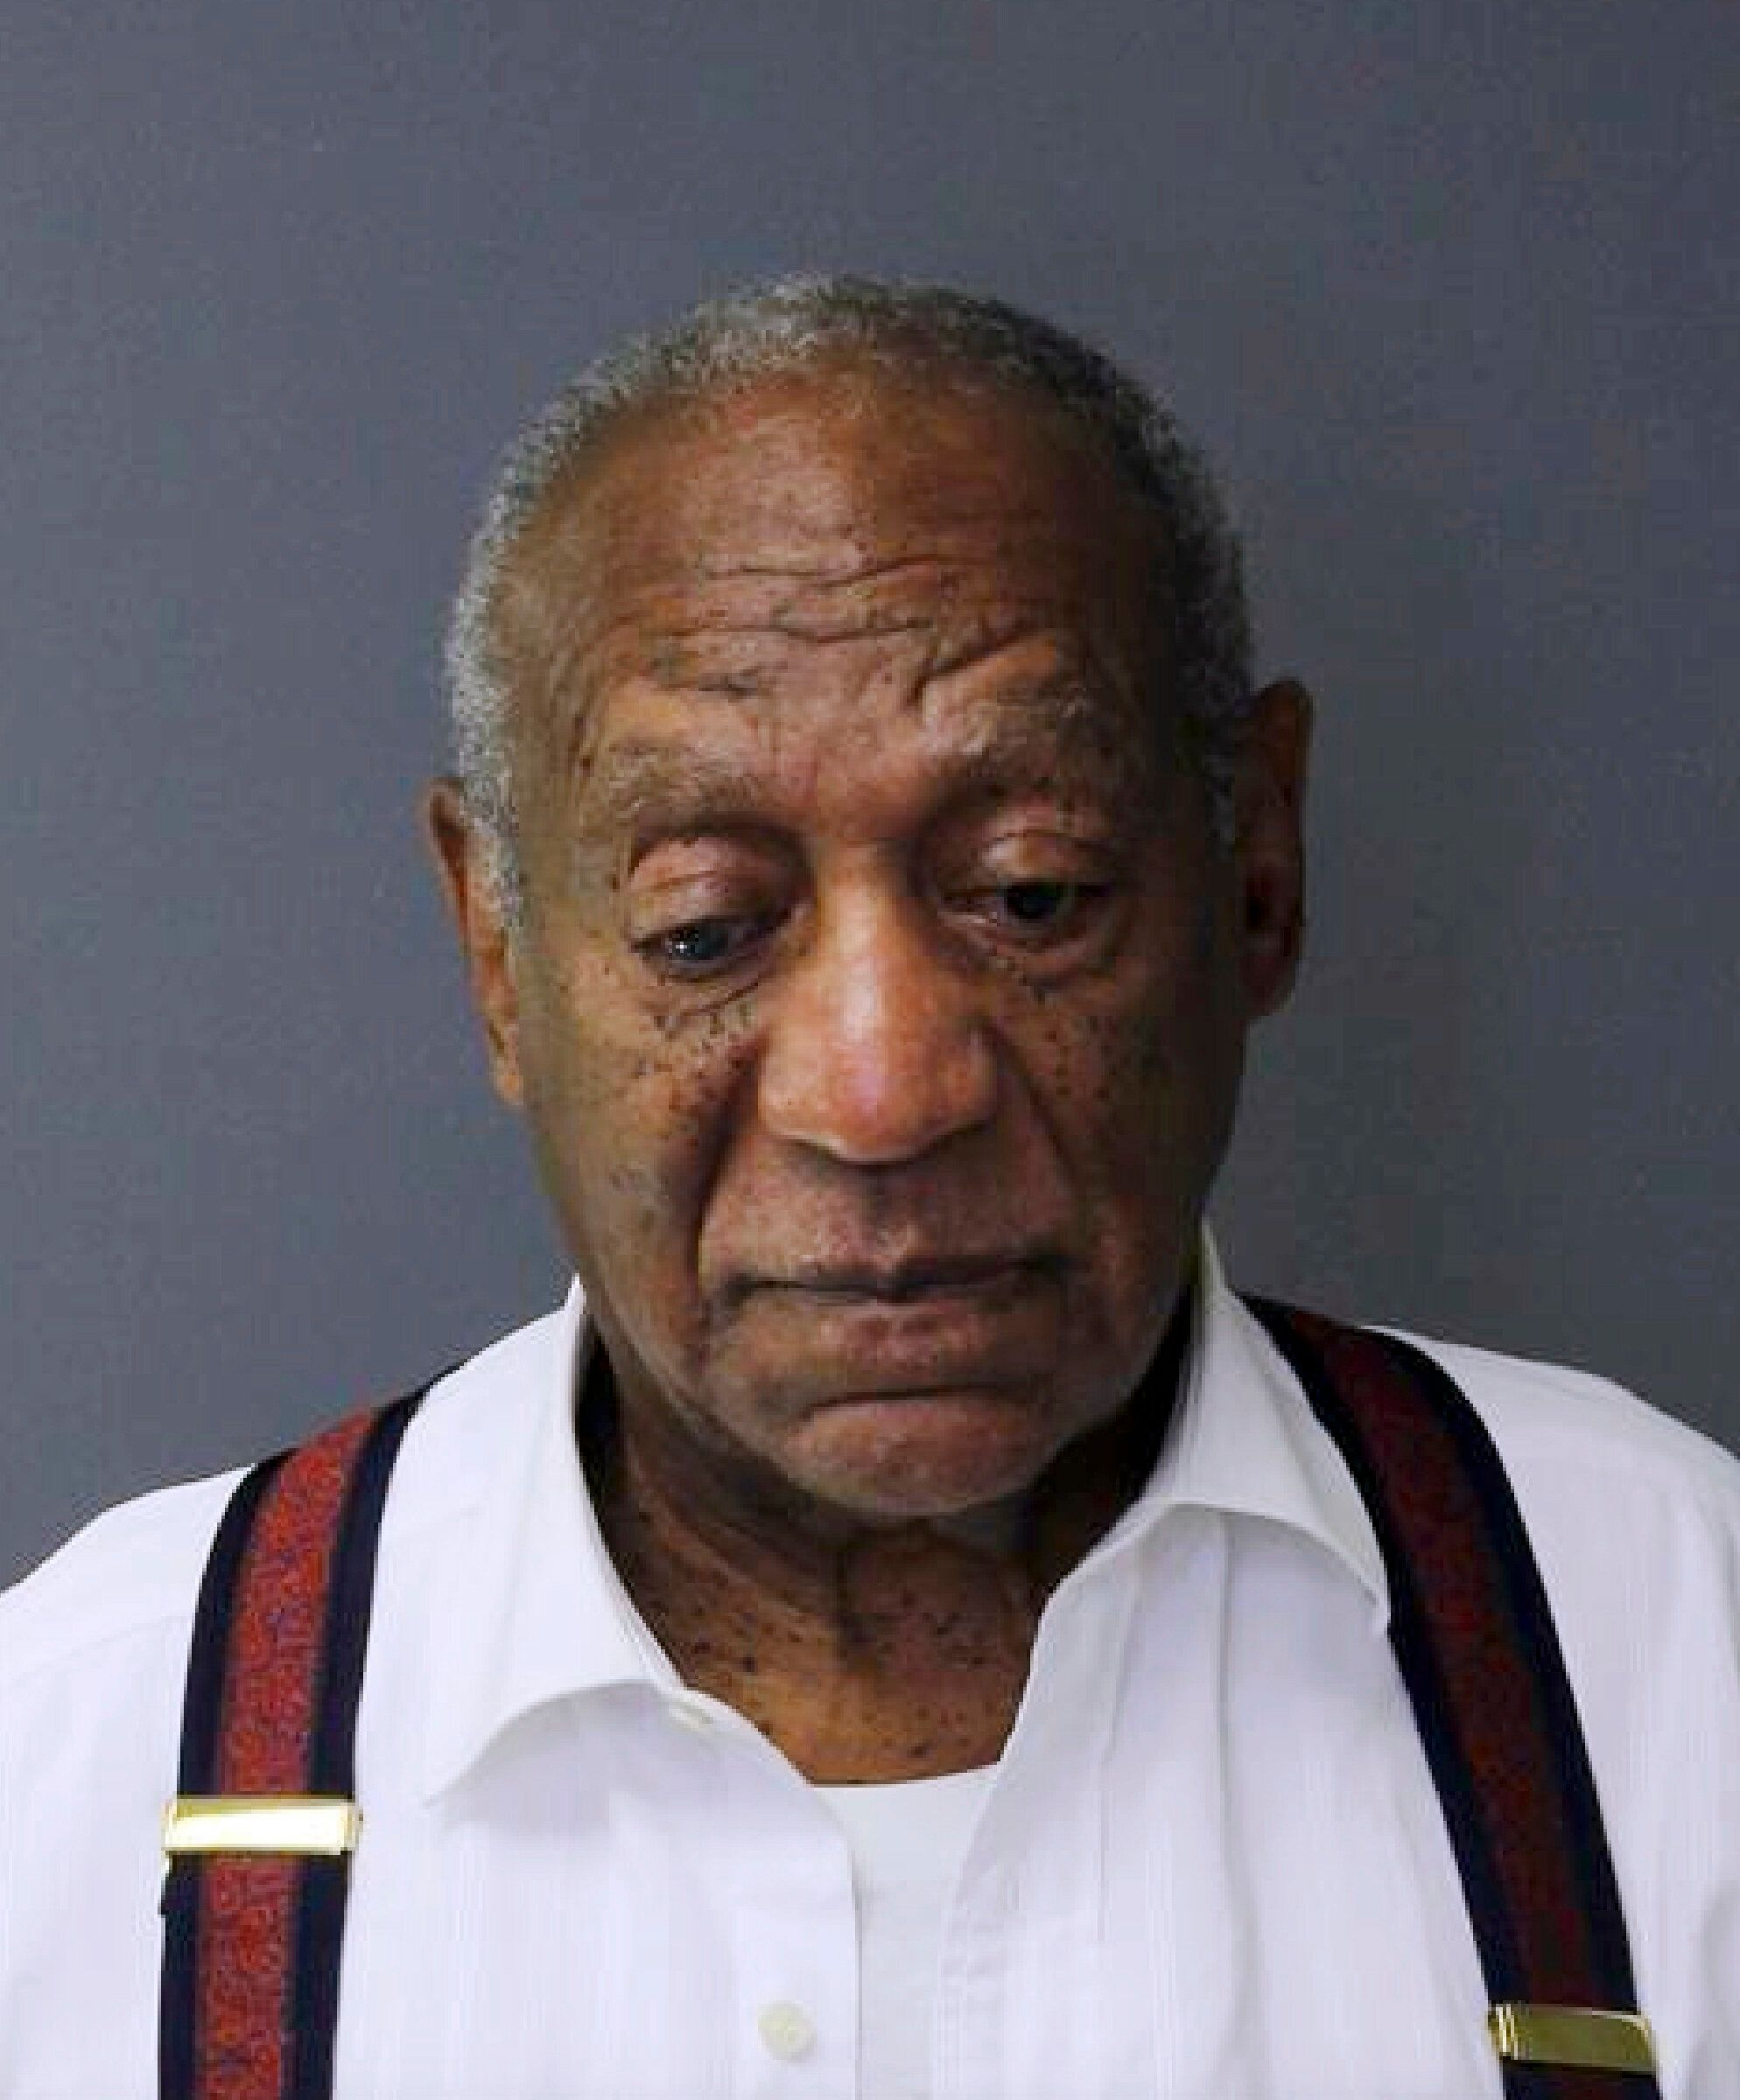 This image provided by the Montgomery County Correctional Facility shows Bill Cosby on Tuesday, Sept. 25, 2018, after he was sentenced to three-to 10-years for sexual assault. (Montgomery County Correctional Facility via AP)